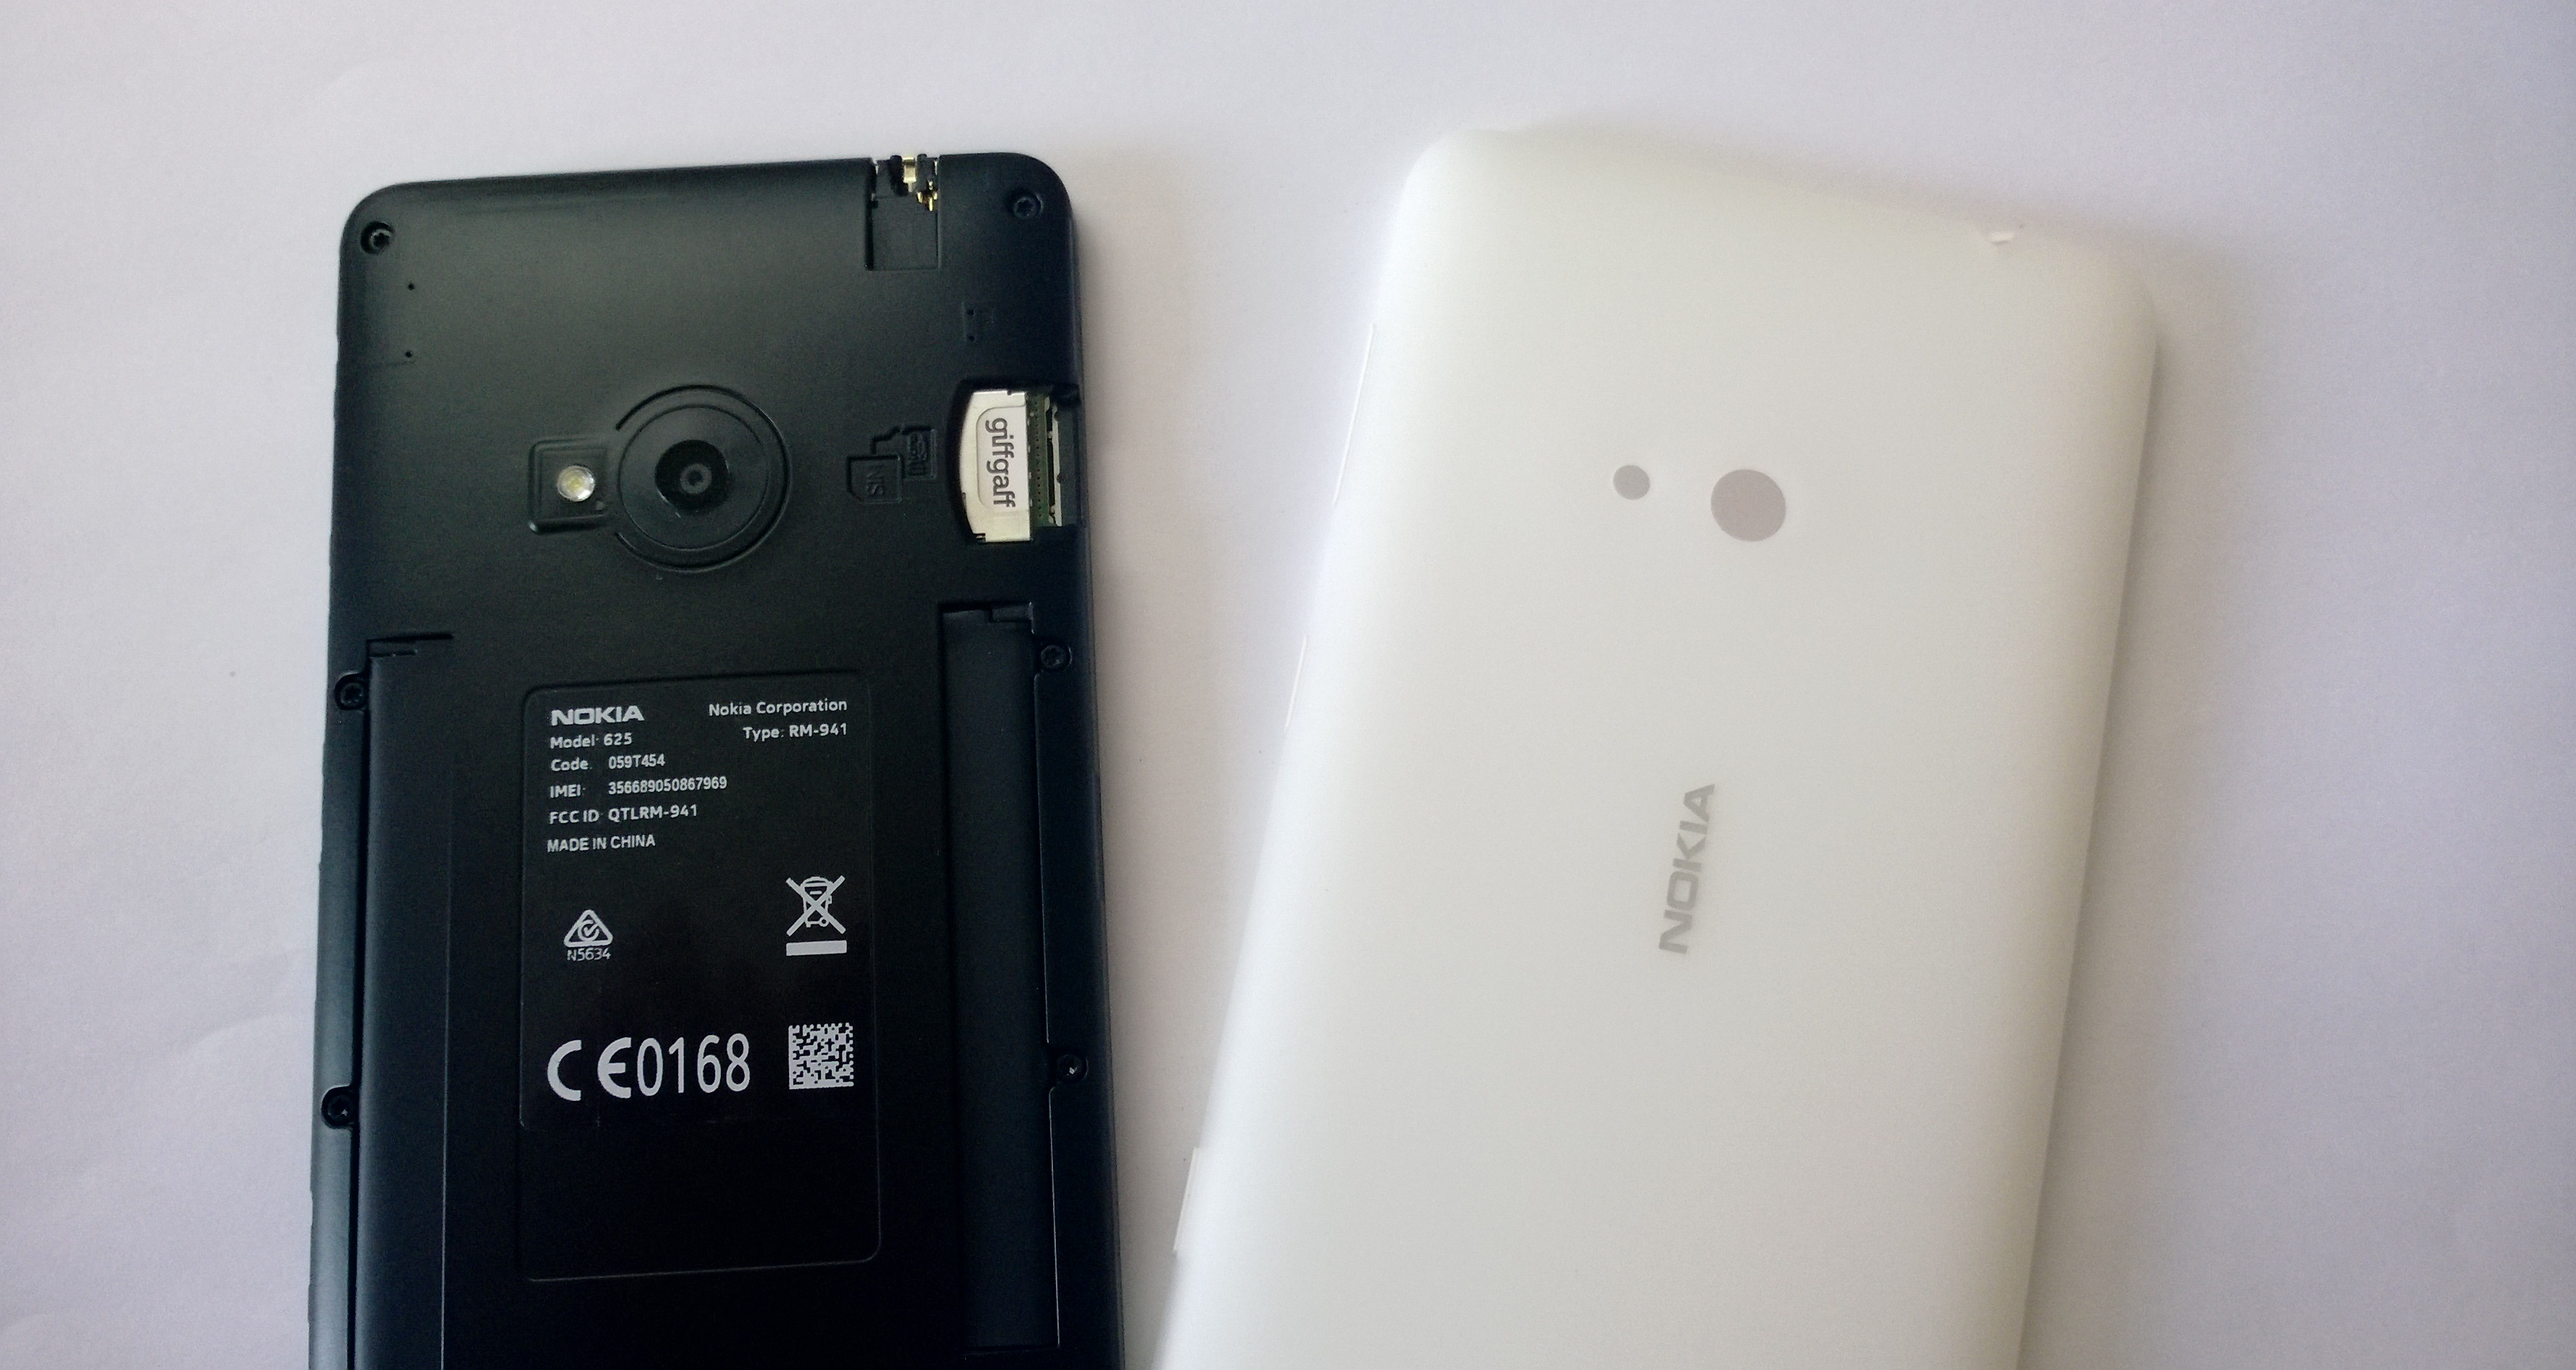 Lumia625 cover Nokia Lumia 625 review: 4G saves the day, but the 4.7 display disappoints